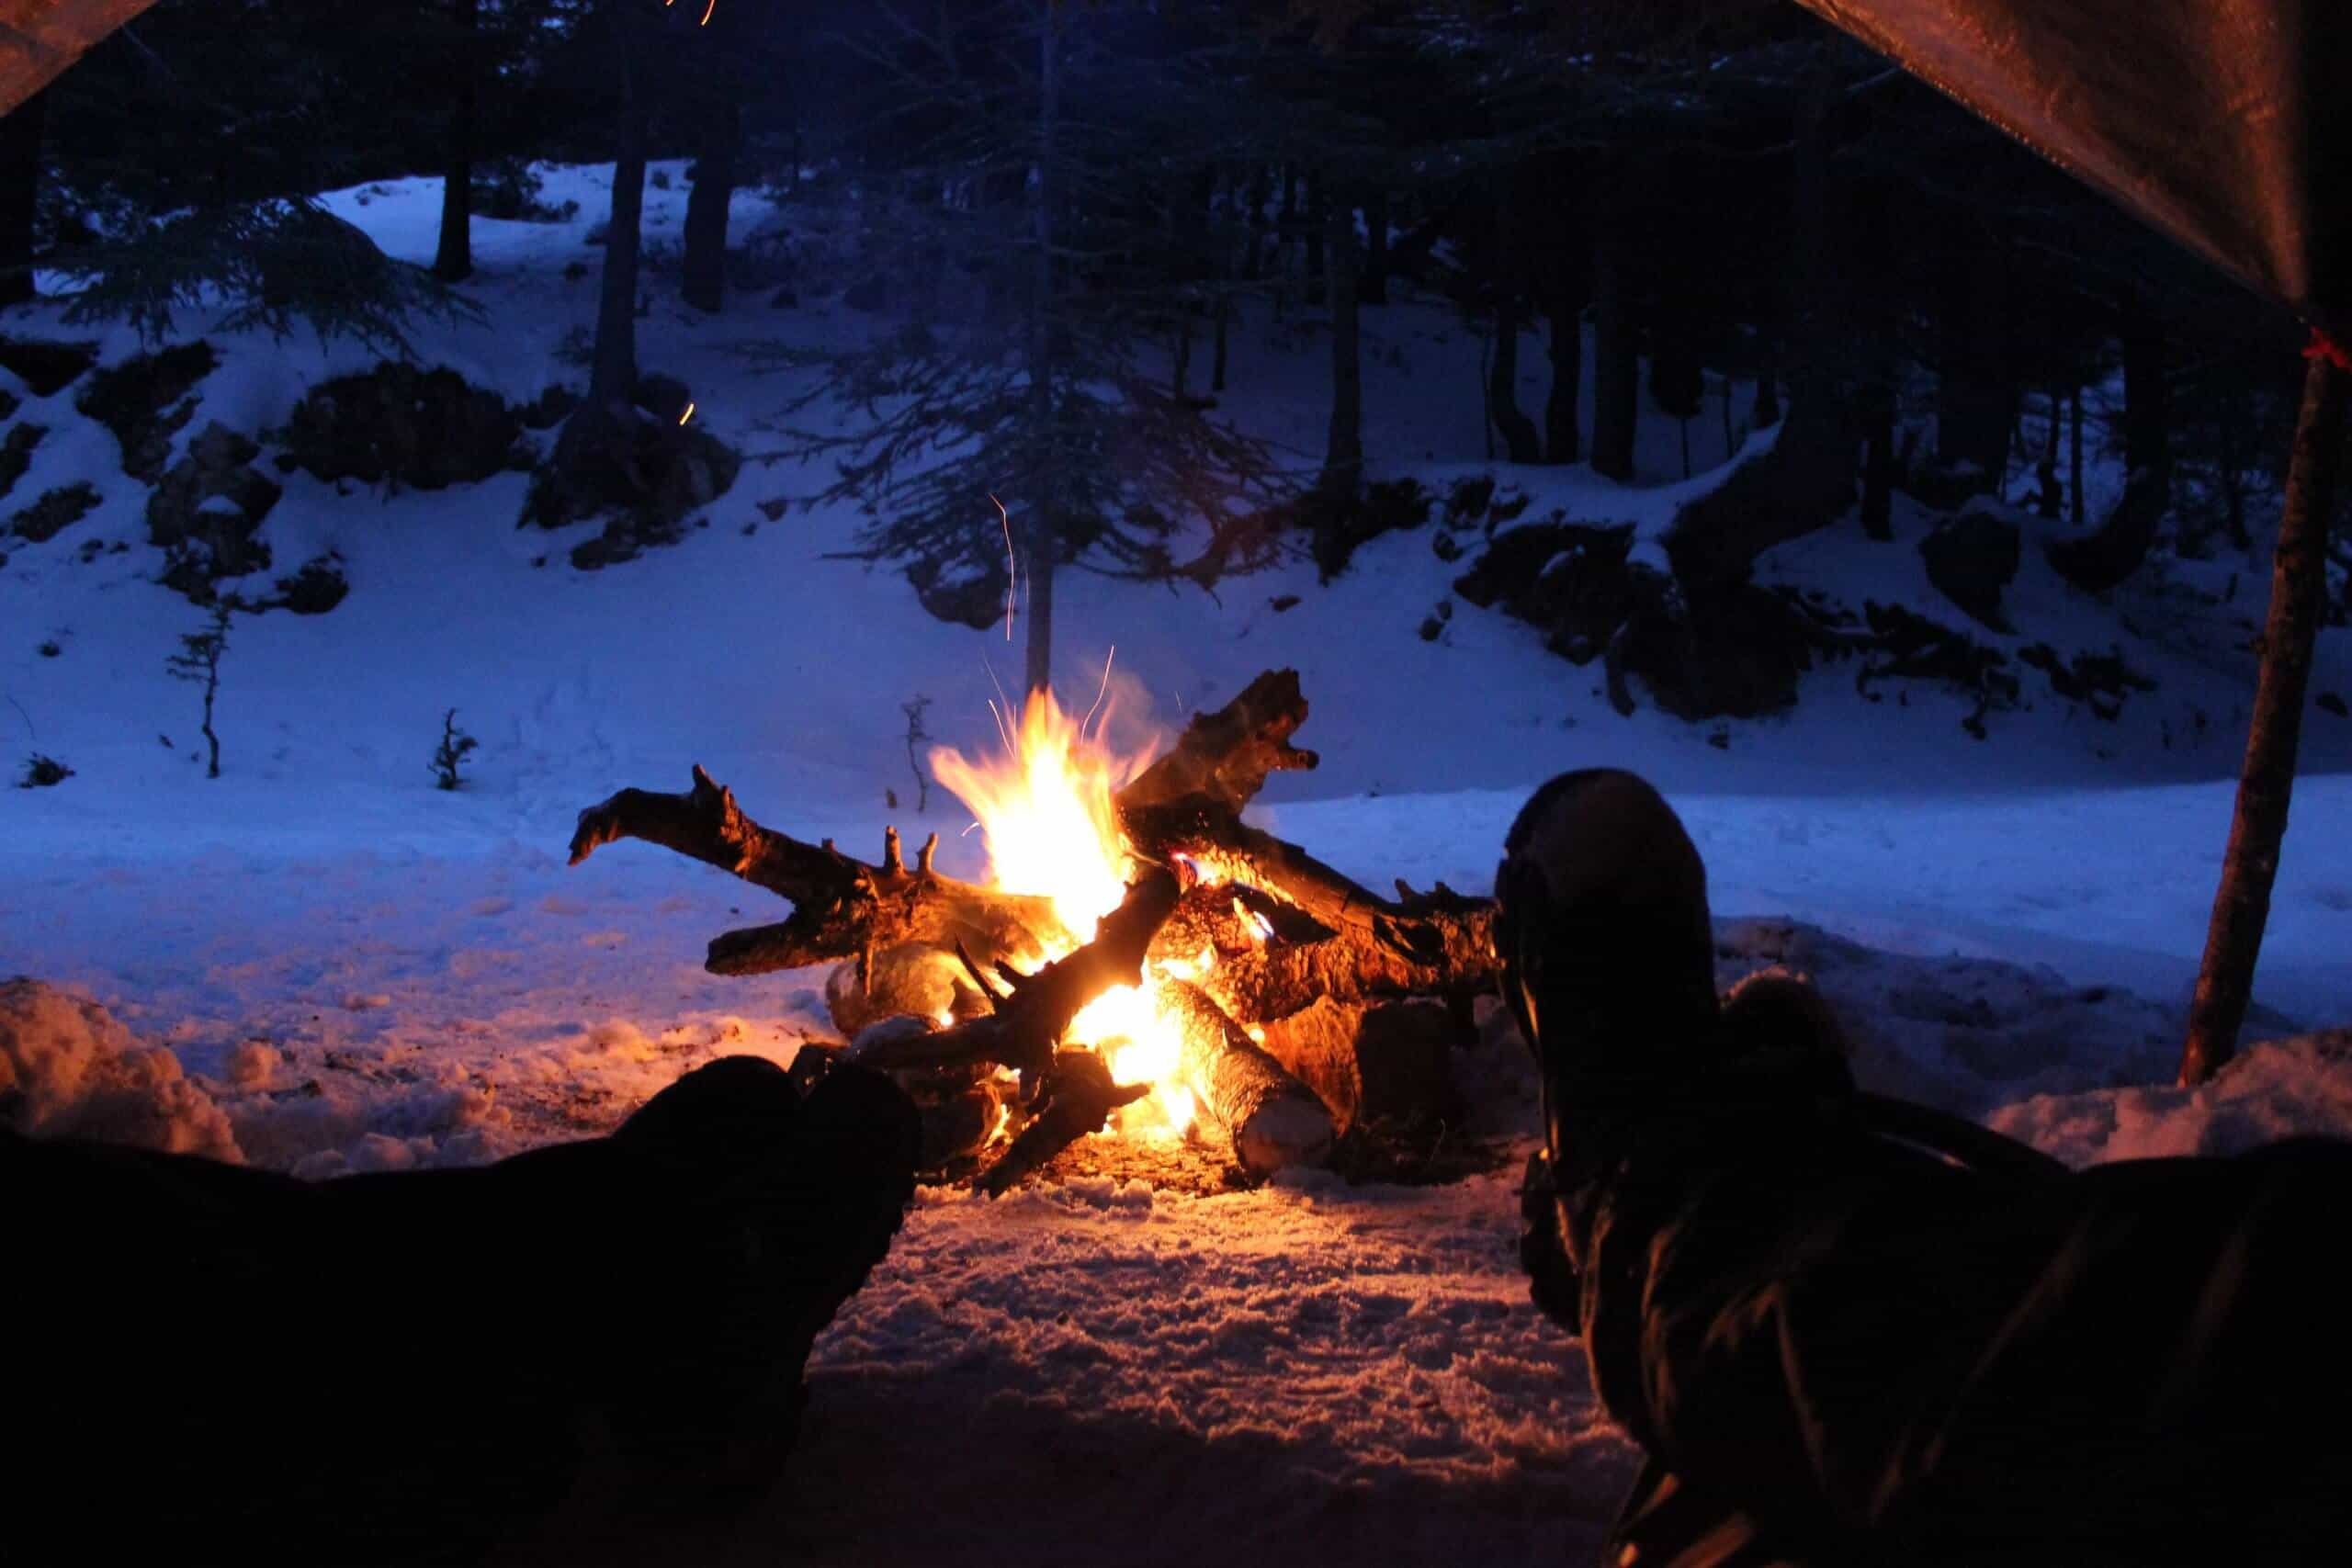 two people lying in a tent wearing the best thermal underwear for extreme cold warming their feet at a fire in the snow